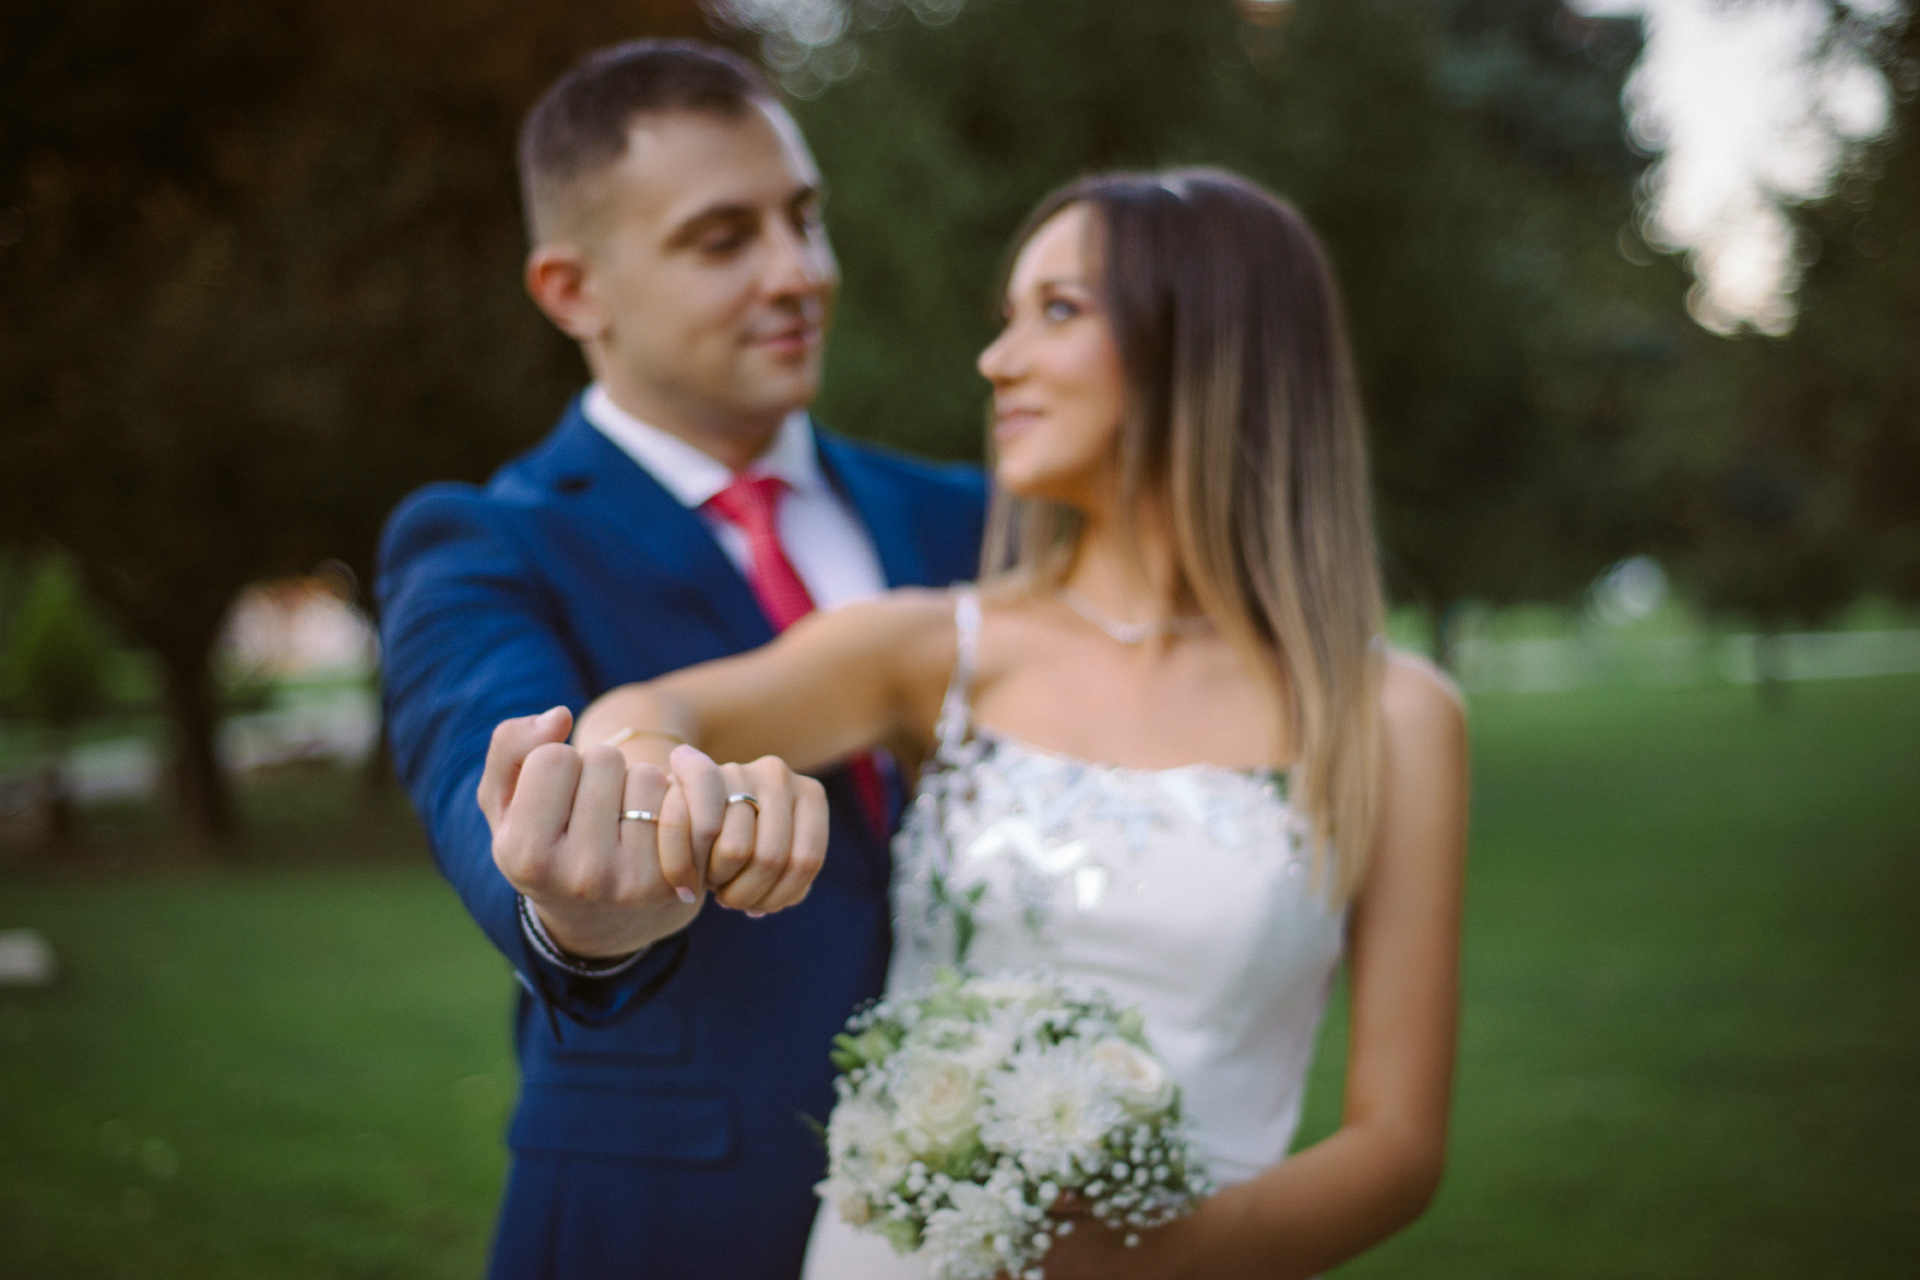 Exchange wedding rings with your fiancee